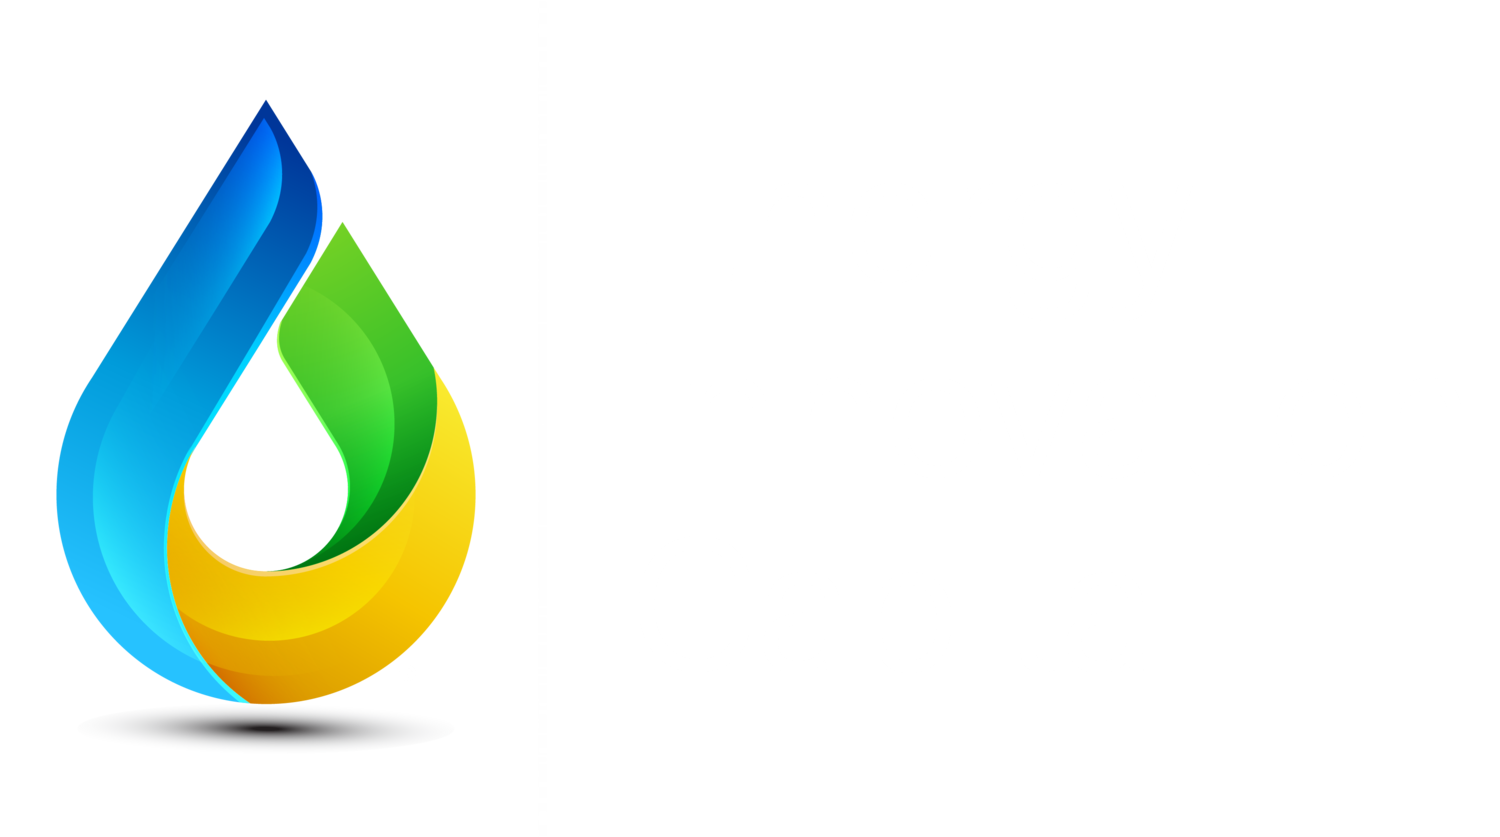 Energy Innovation Capital